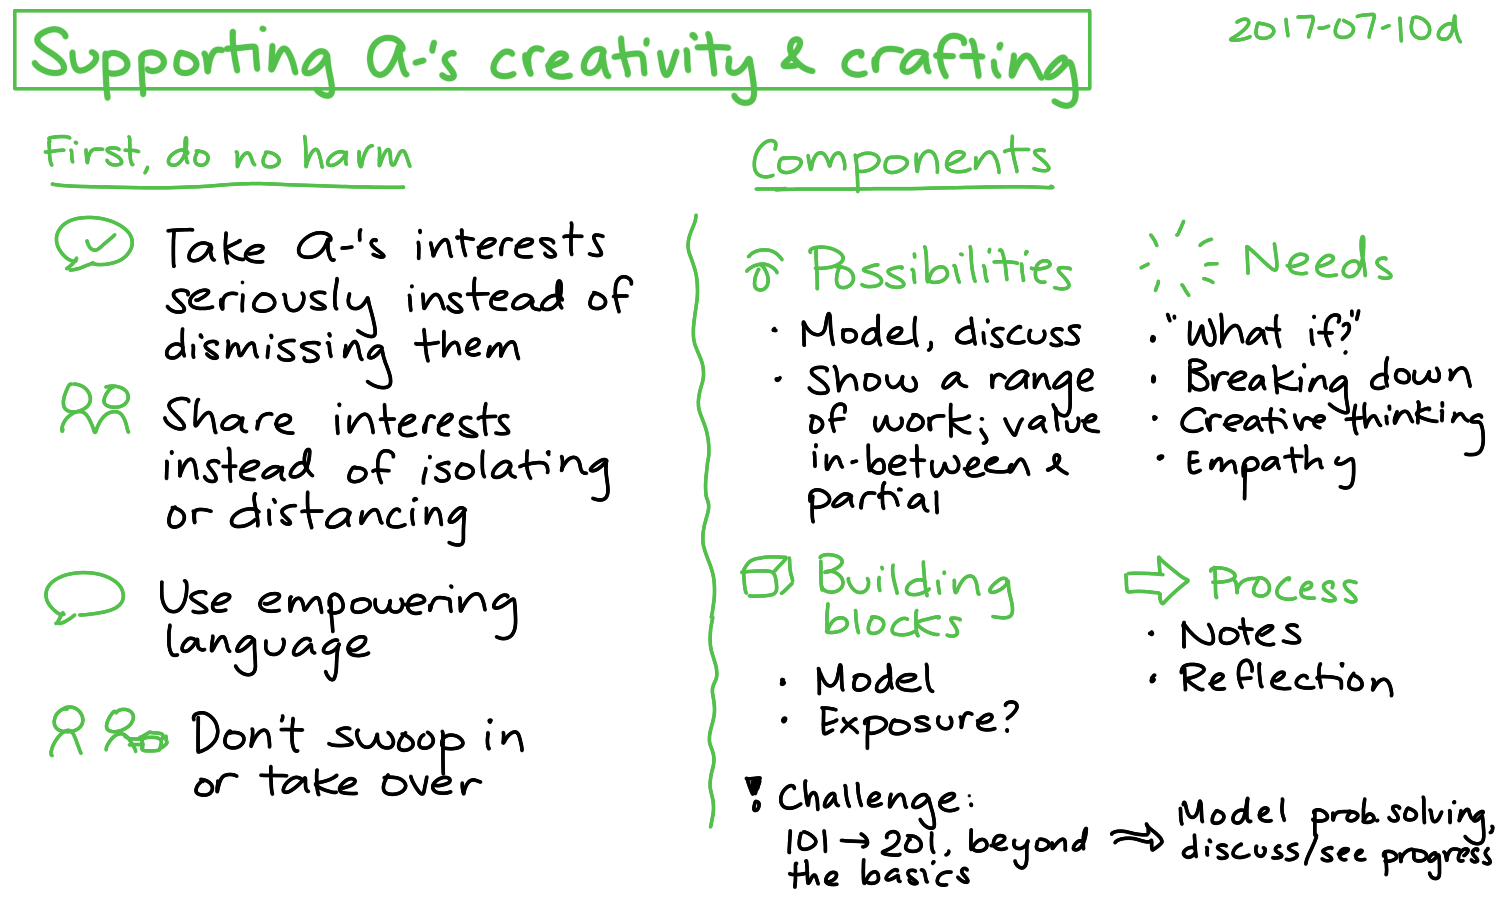 2017-07-10d Supporting A-'s creativity and crafting #crafting #parenting.png